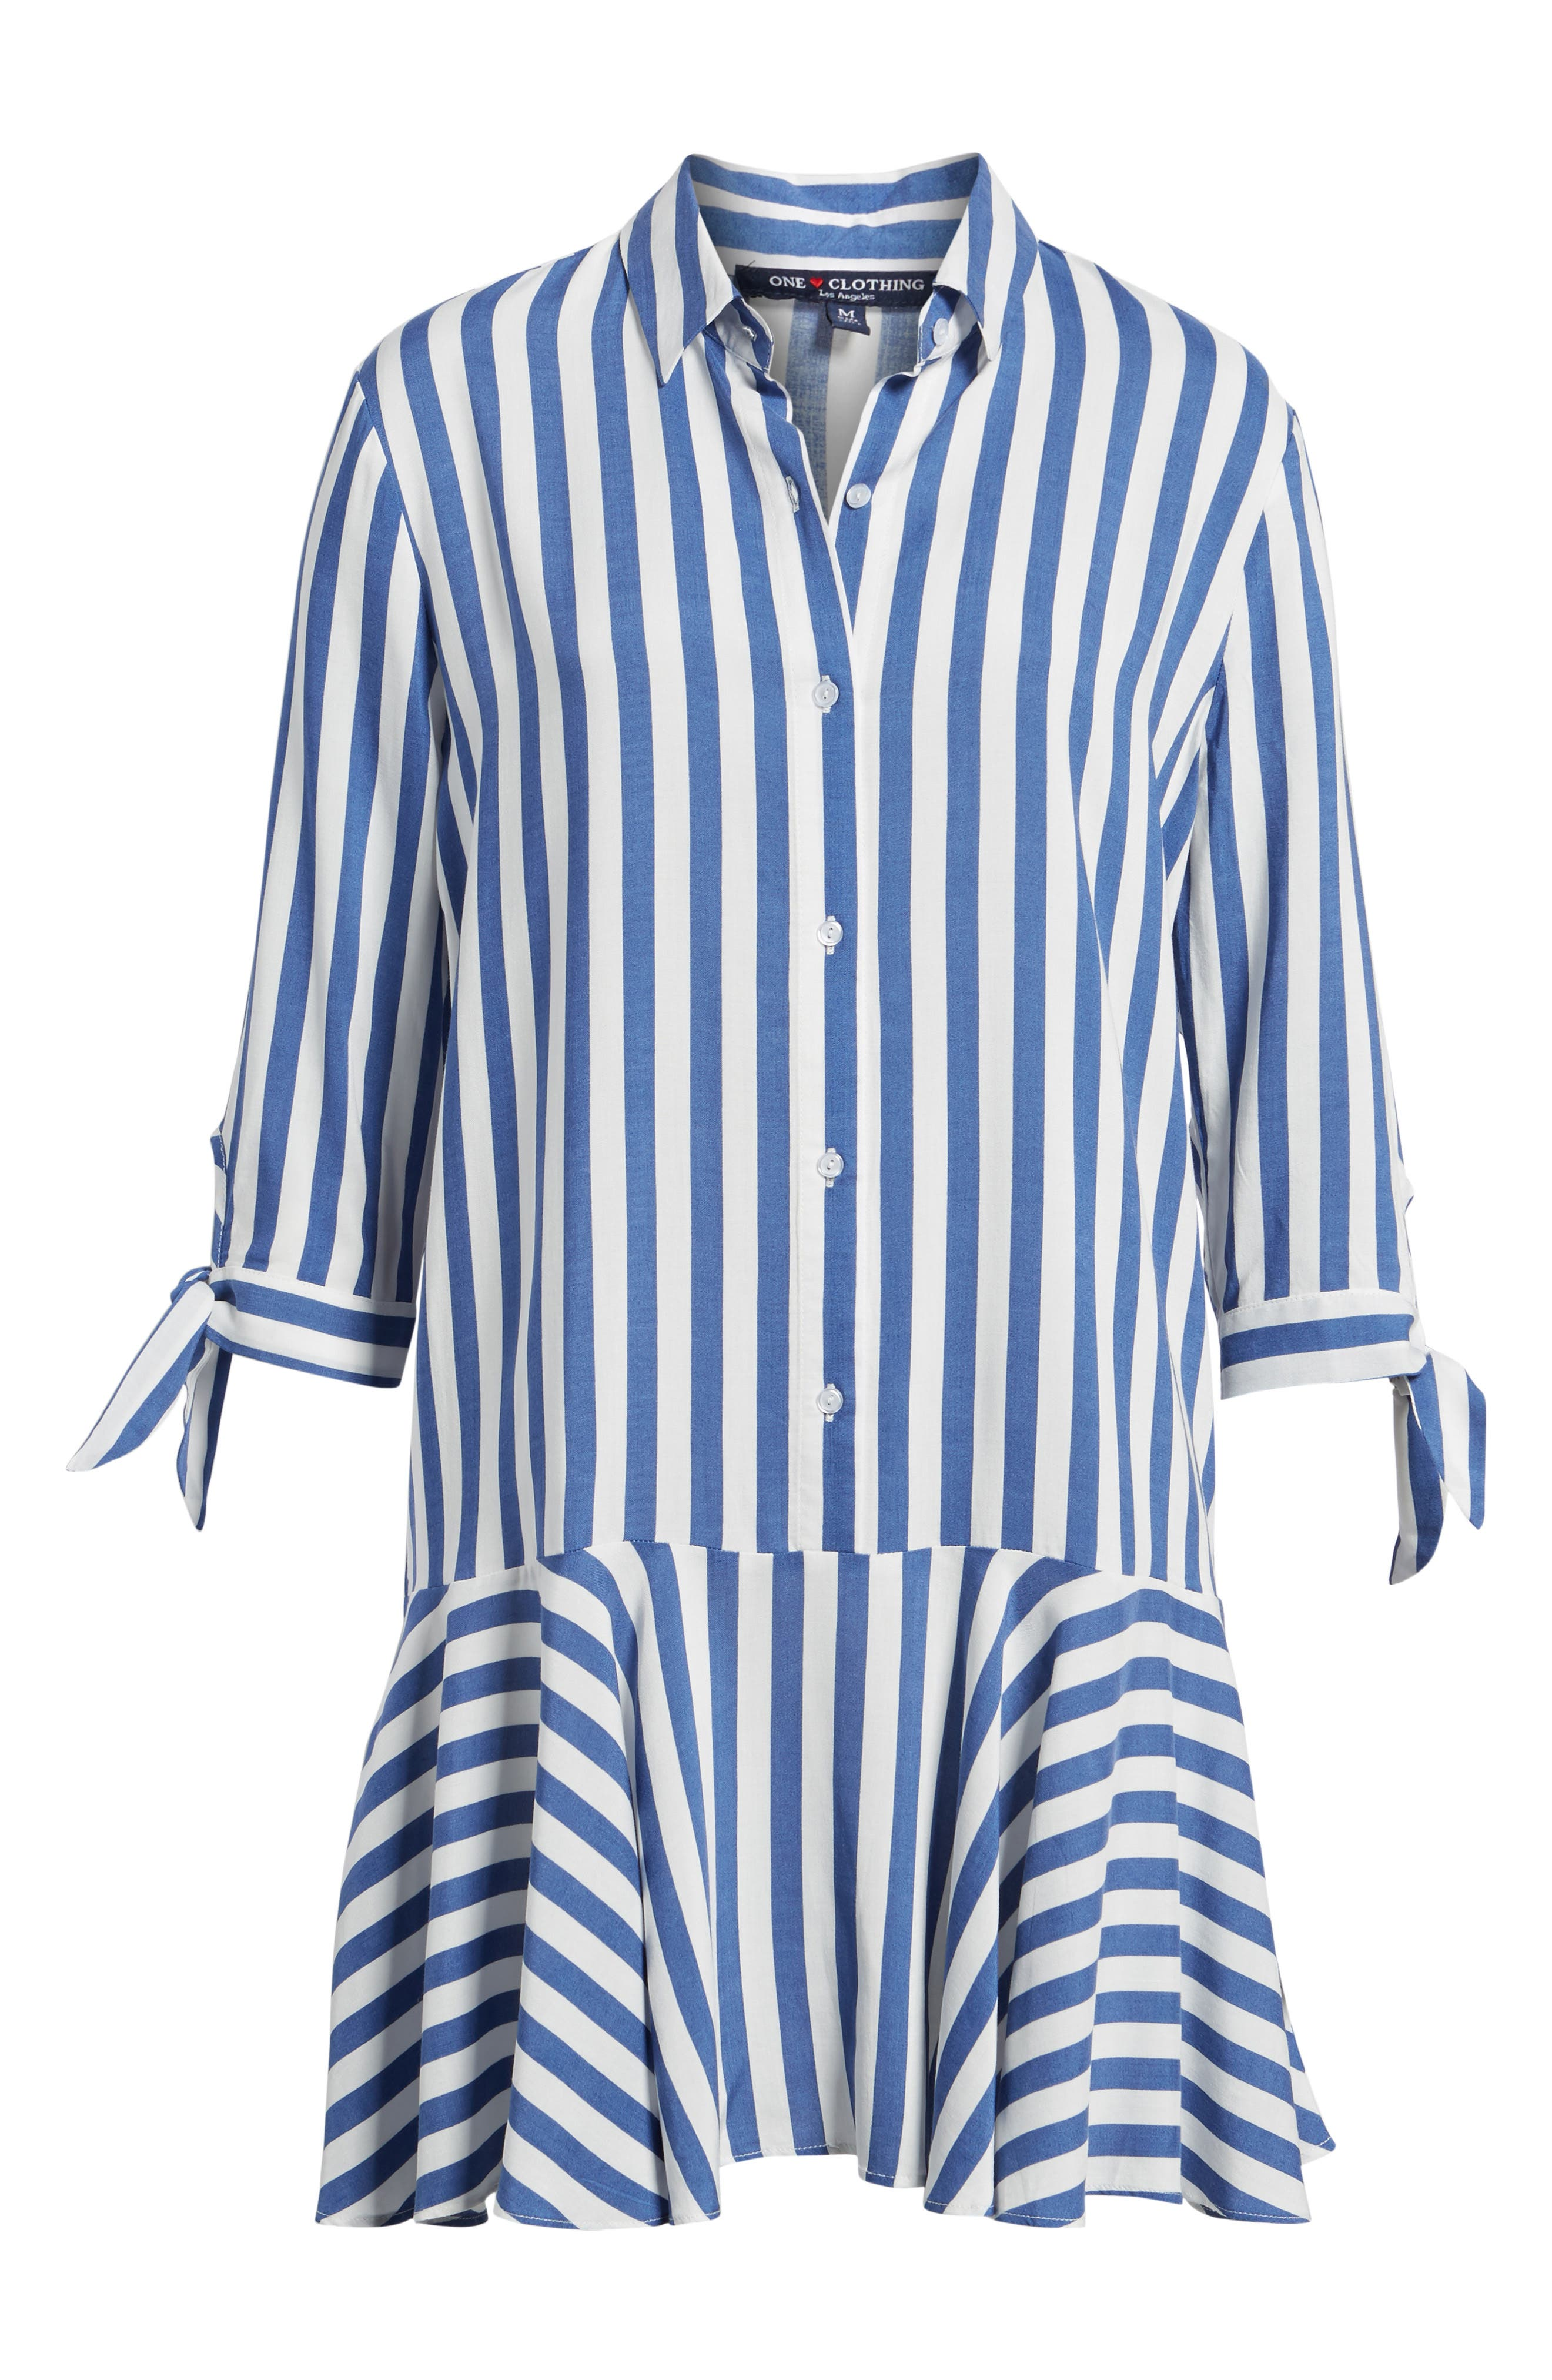 Drop Waist Shirtdress,                             Alternate thumbnail 6, color,                             Blue/ White